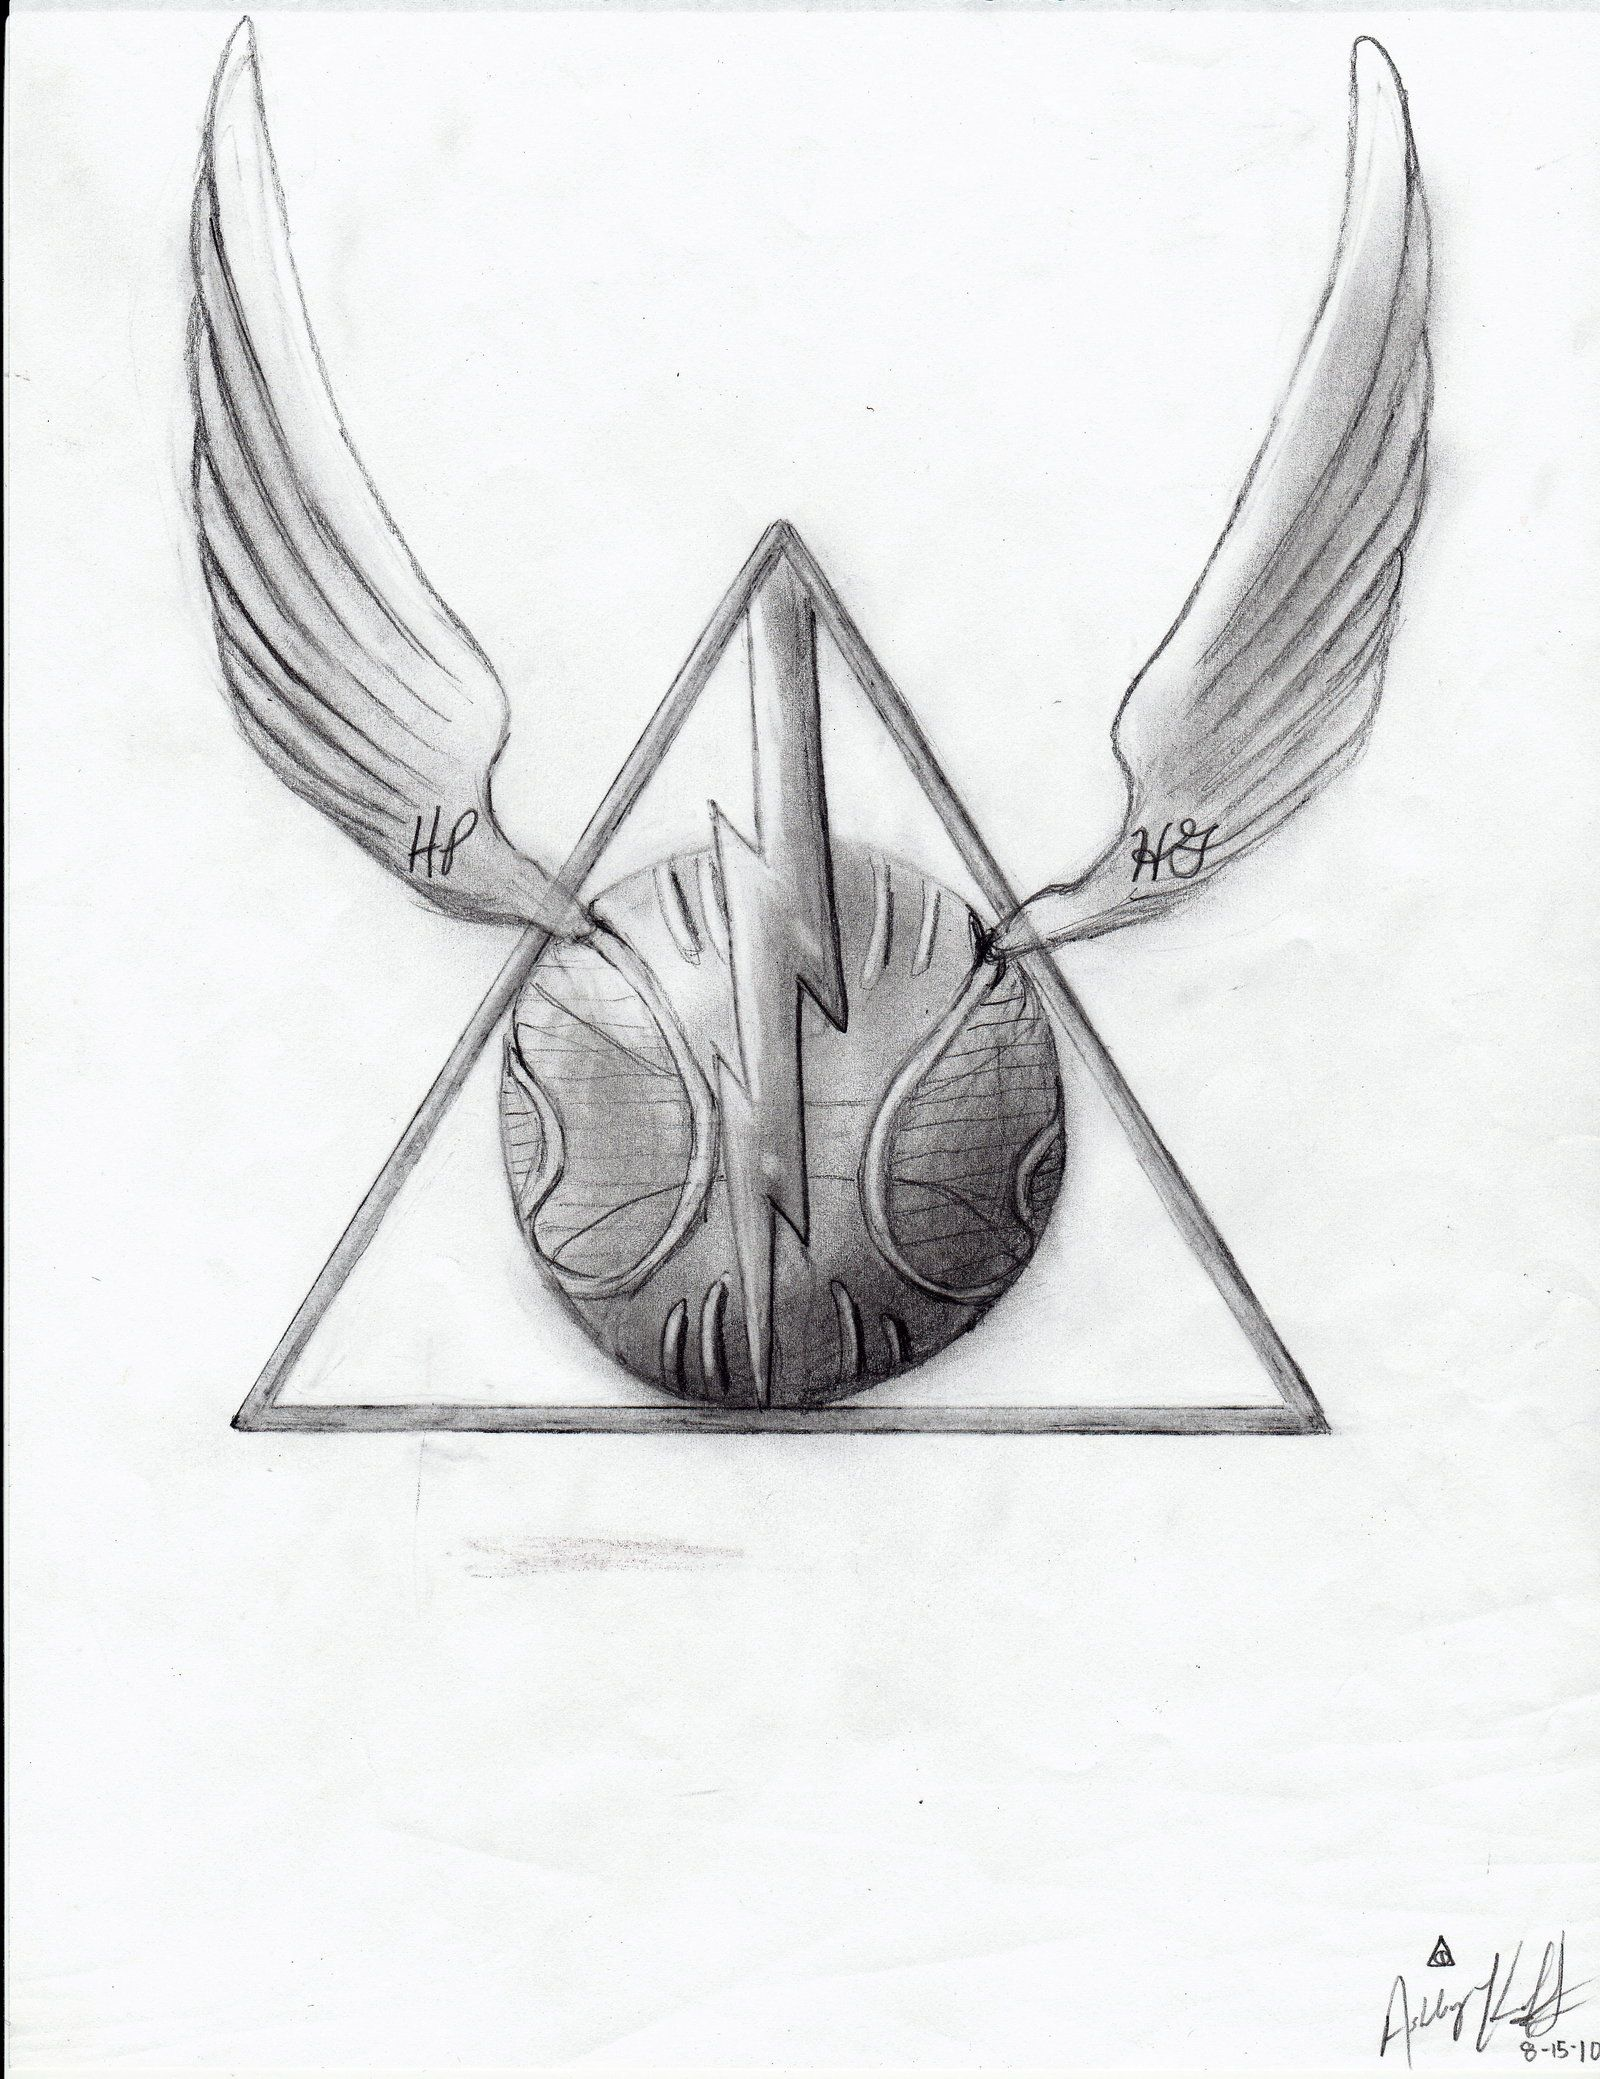 Harry potter deathly hallows by ashleymd7iantart on harry potter deathly hallows by ashleymd7iantart on deviantart biocorpaavc